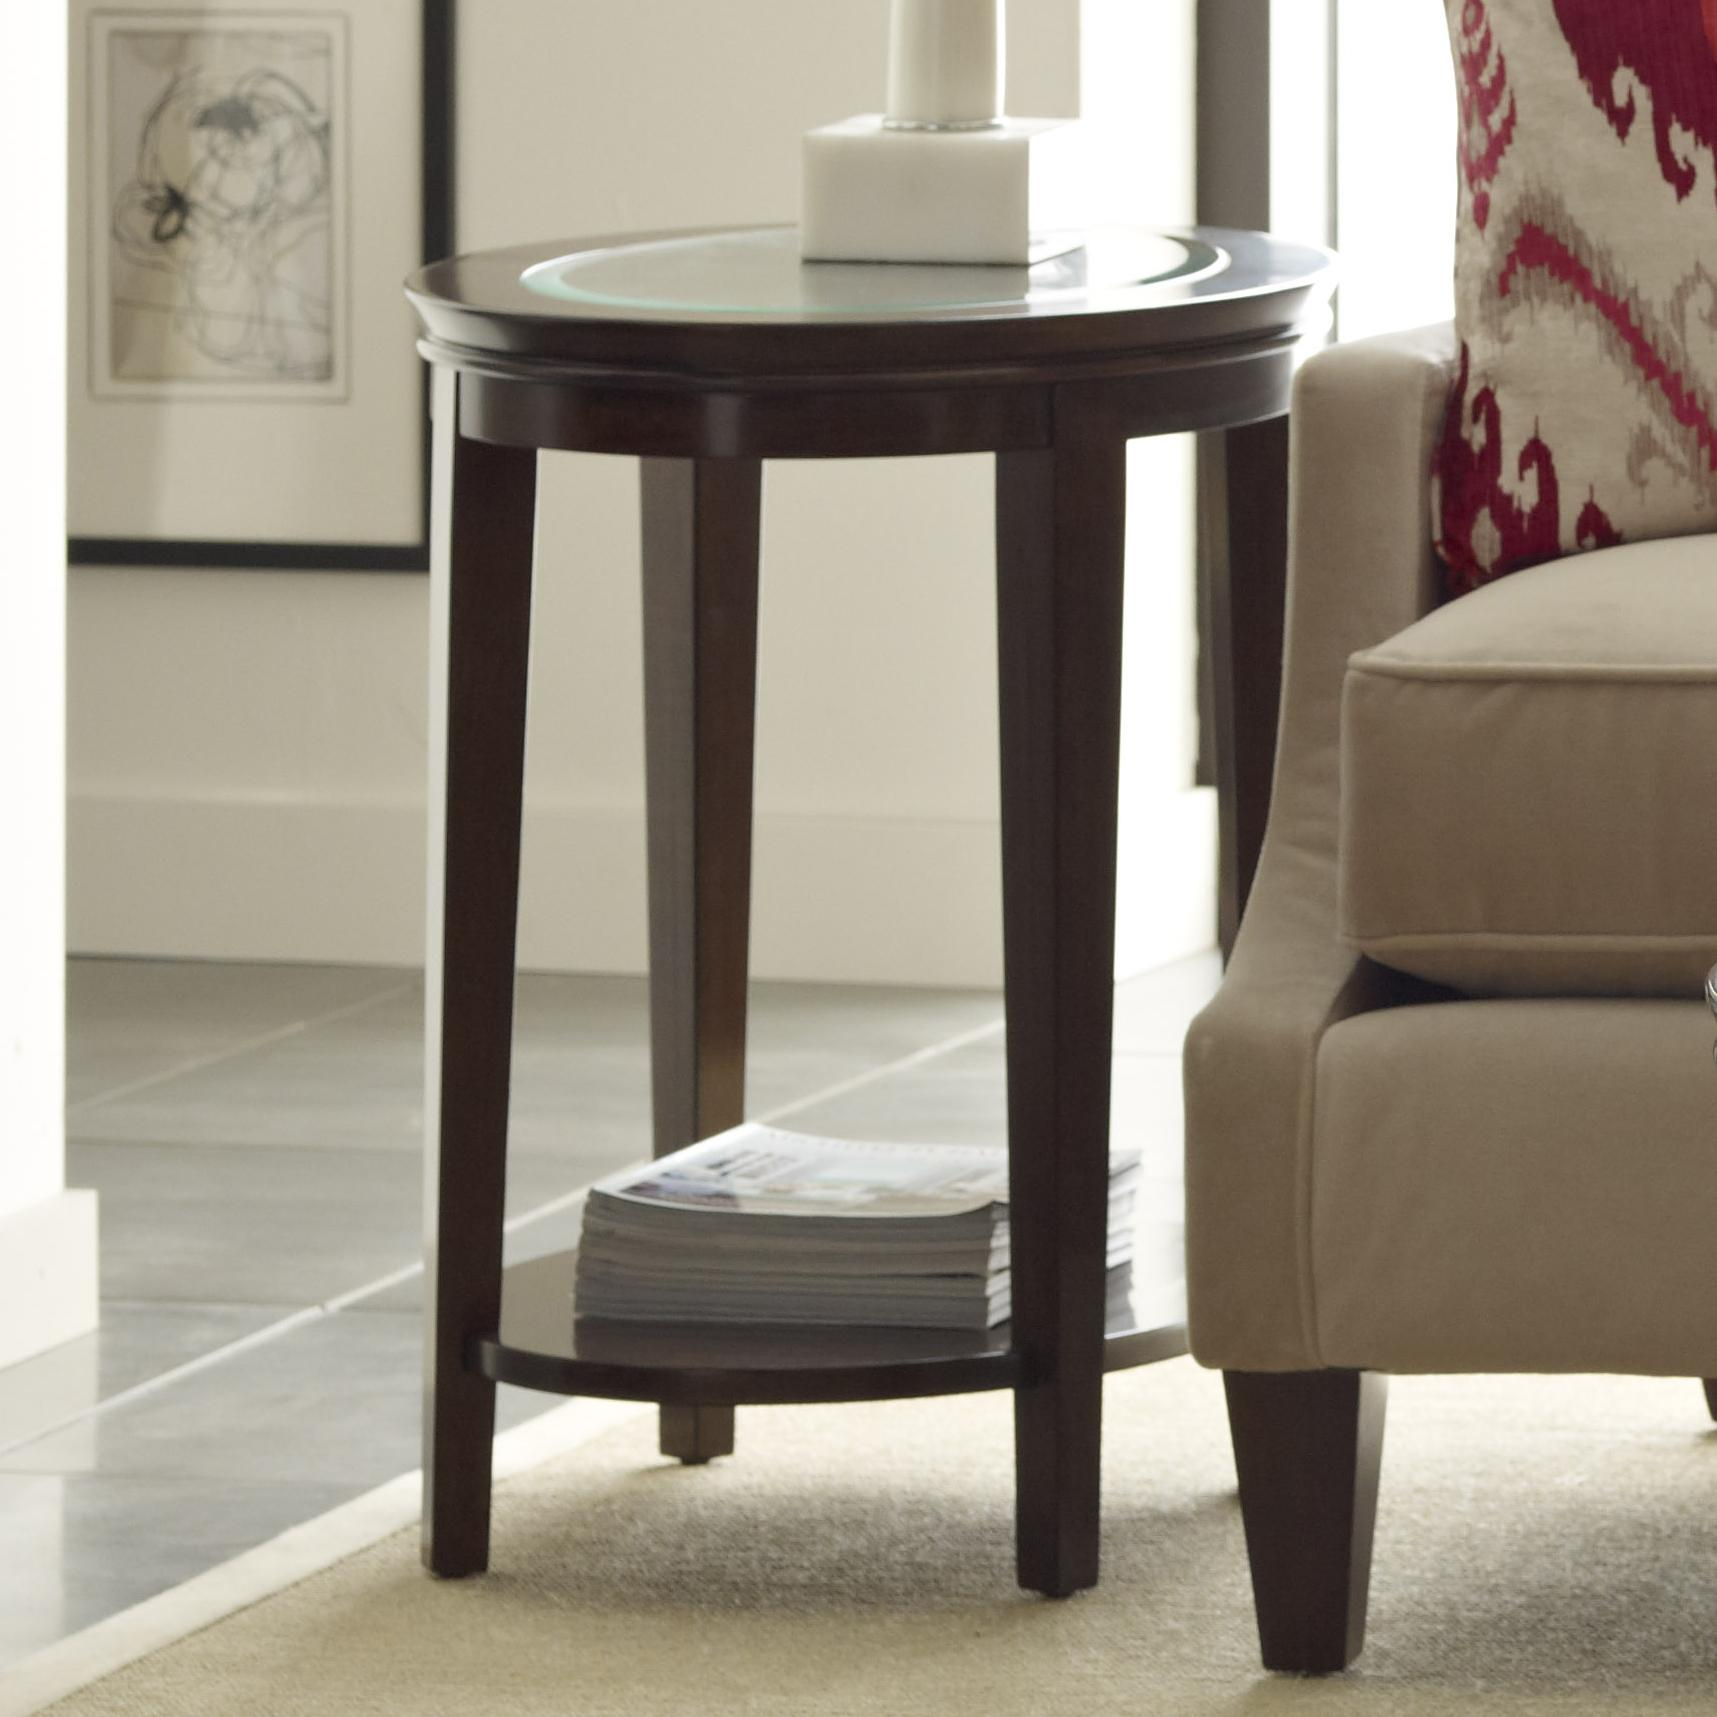 Kincaid Furniture Elise Elise Oval End Table - Item Number: 77-020